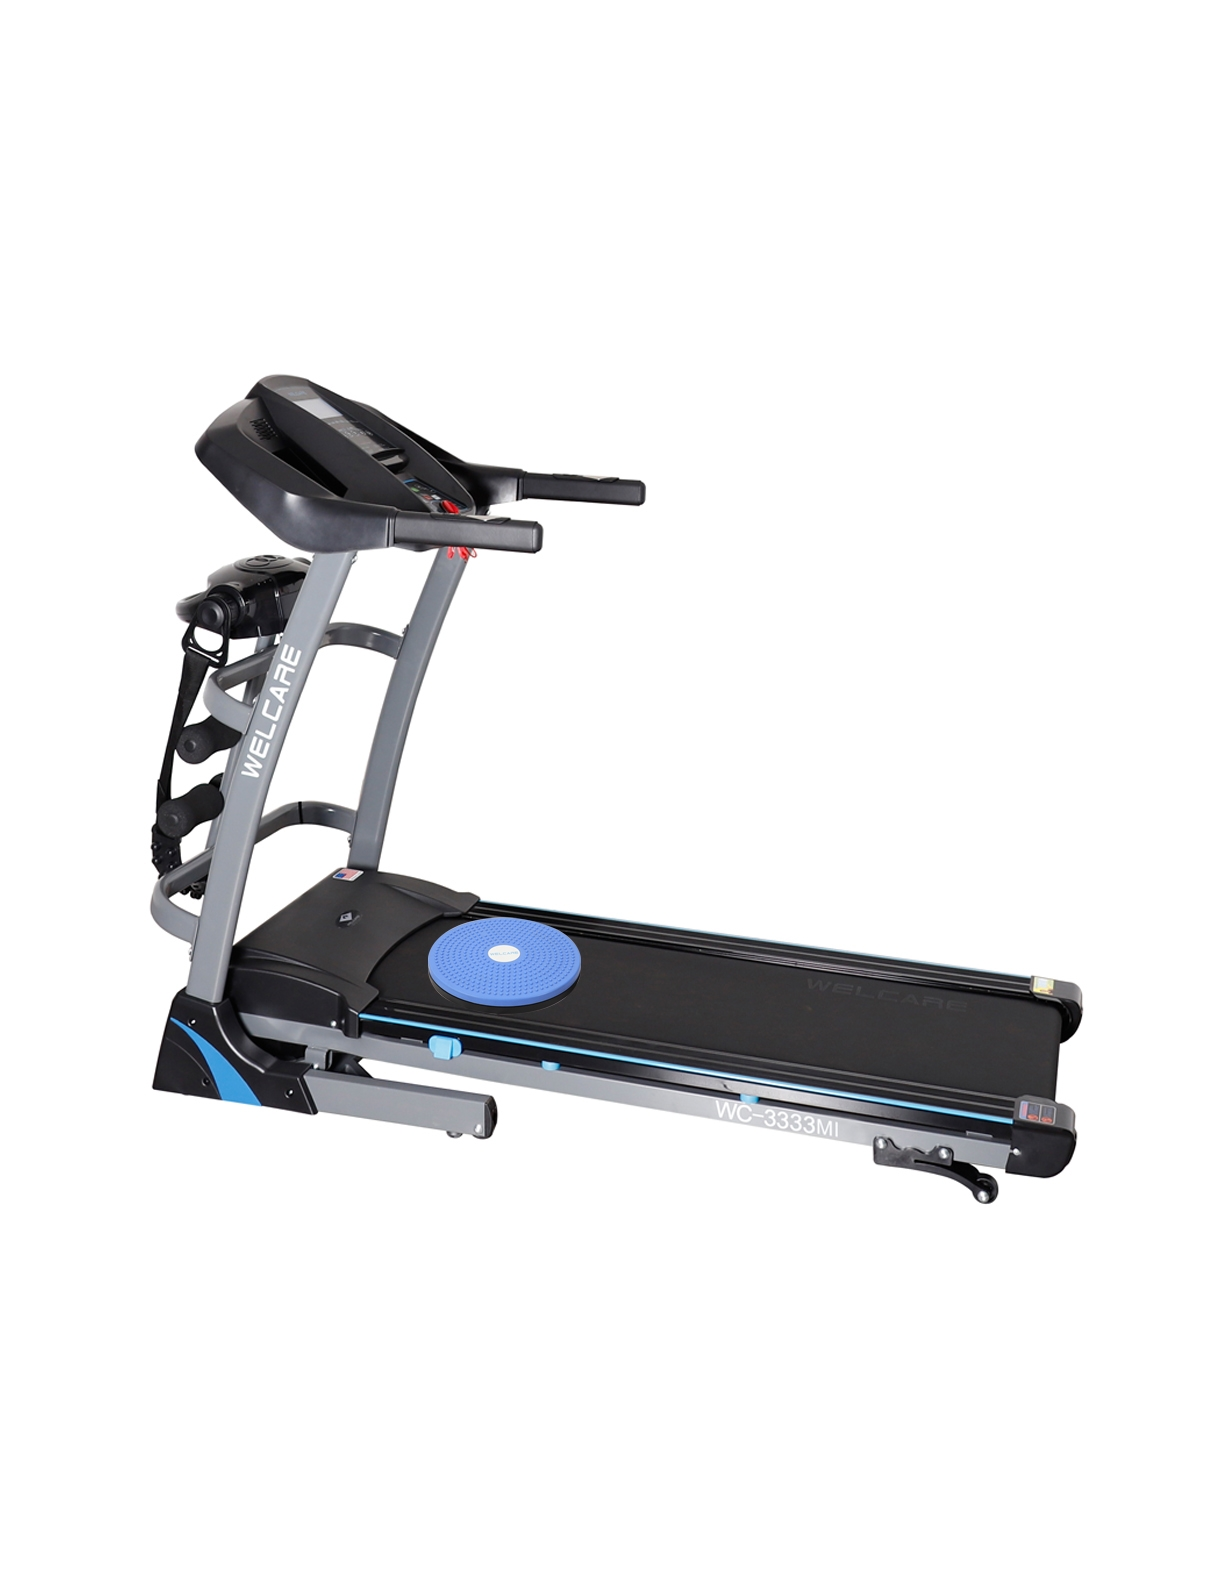 WC 3333MI MOTORIZED TREADMILL